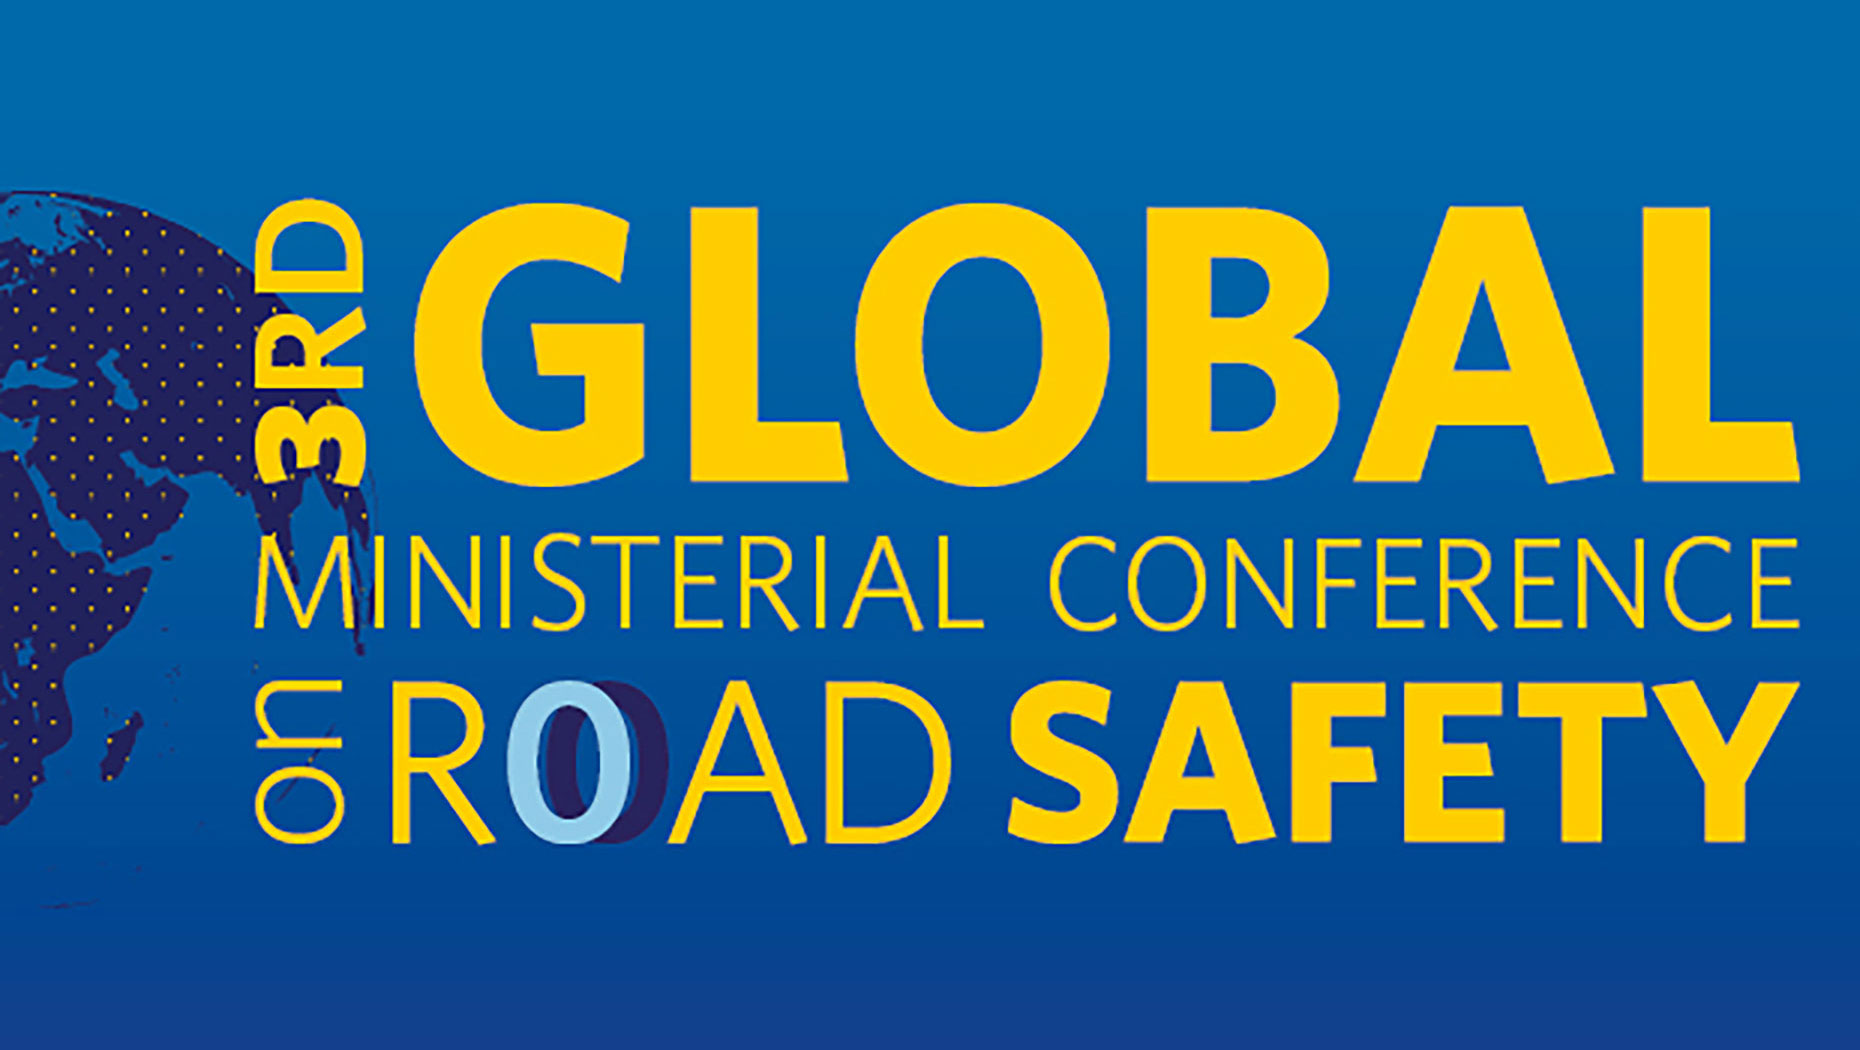 The 3rd UN Global Ministerial Conference on Road Safety